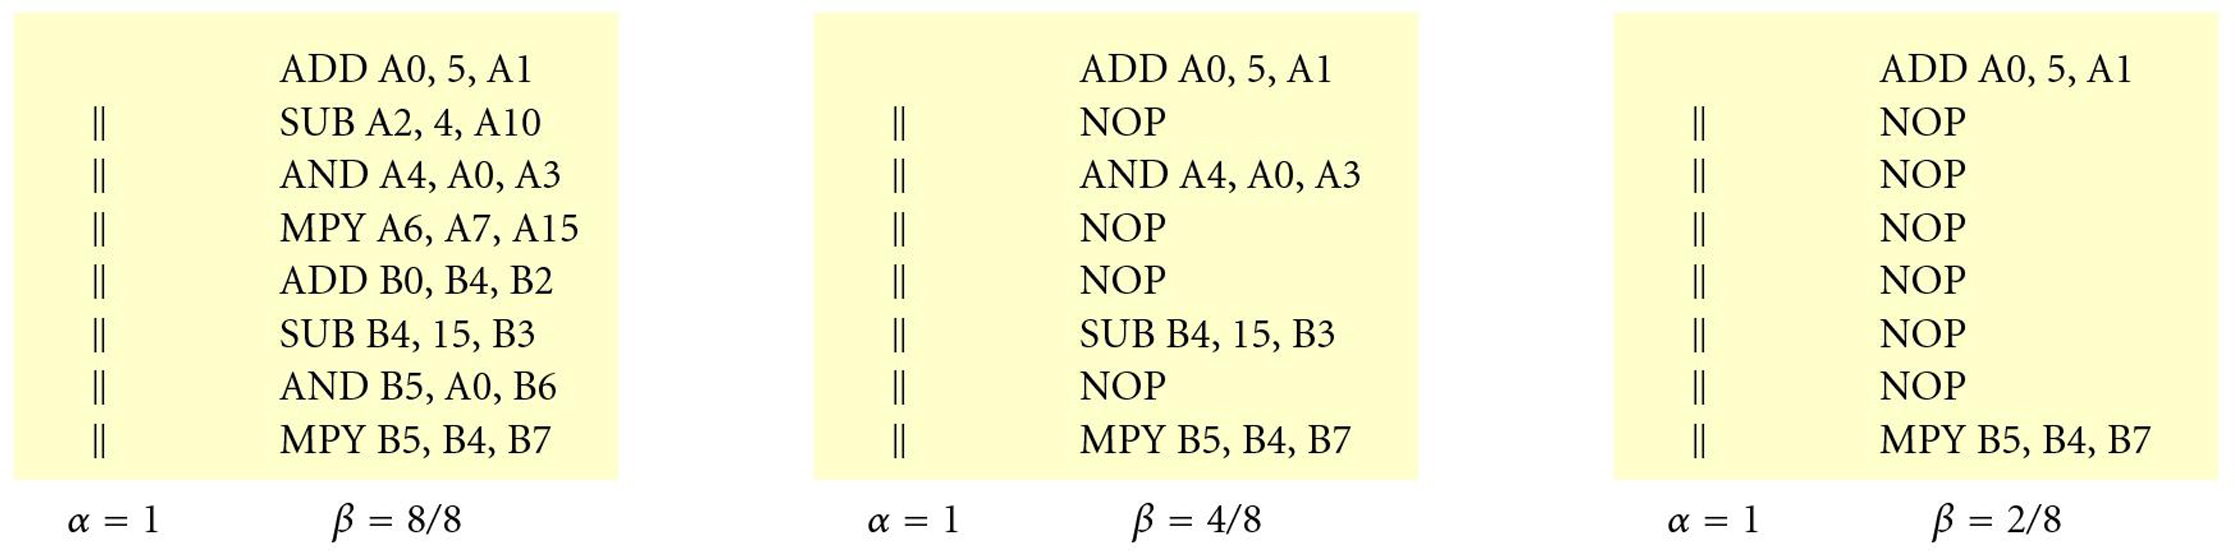 https://static-content.springer.com/image/art%3A10.1155%2F2011%2F480805/MediaObjects/13639_2010_Article_235_Fig9_HTML.jpg